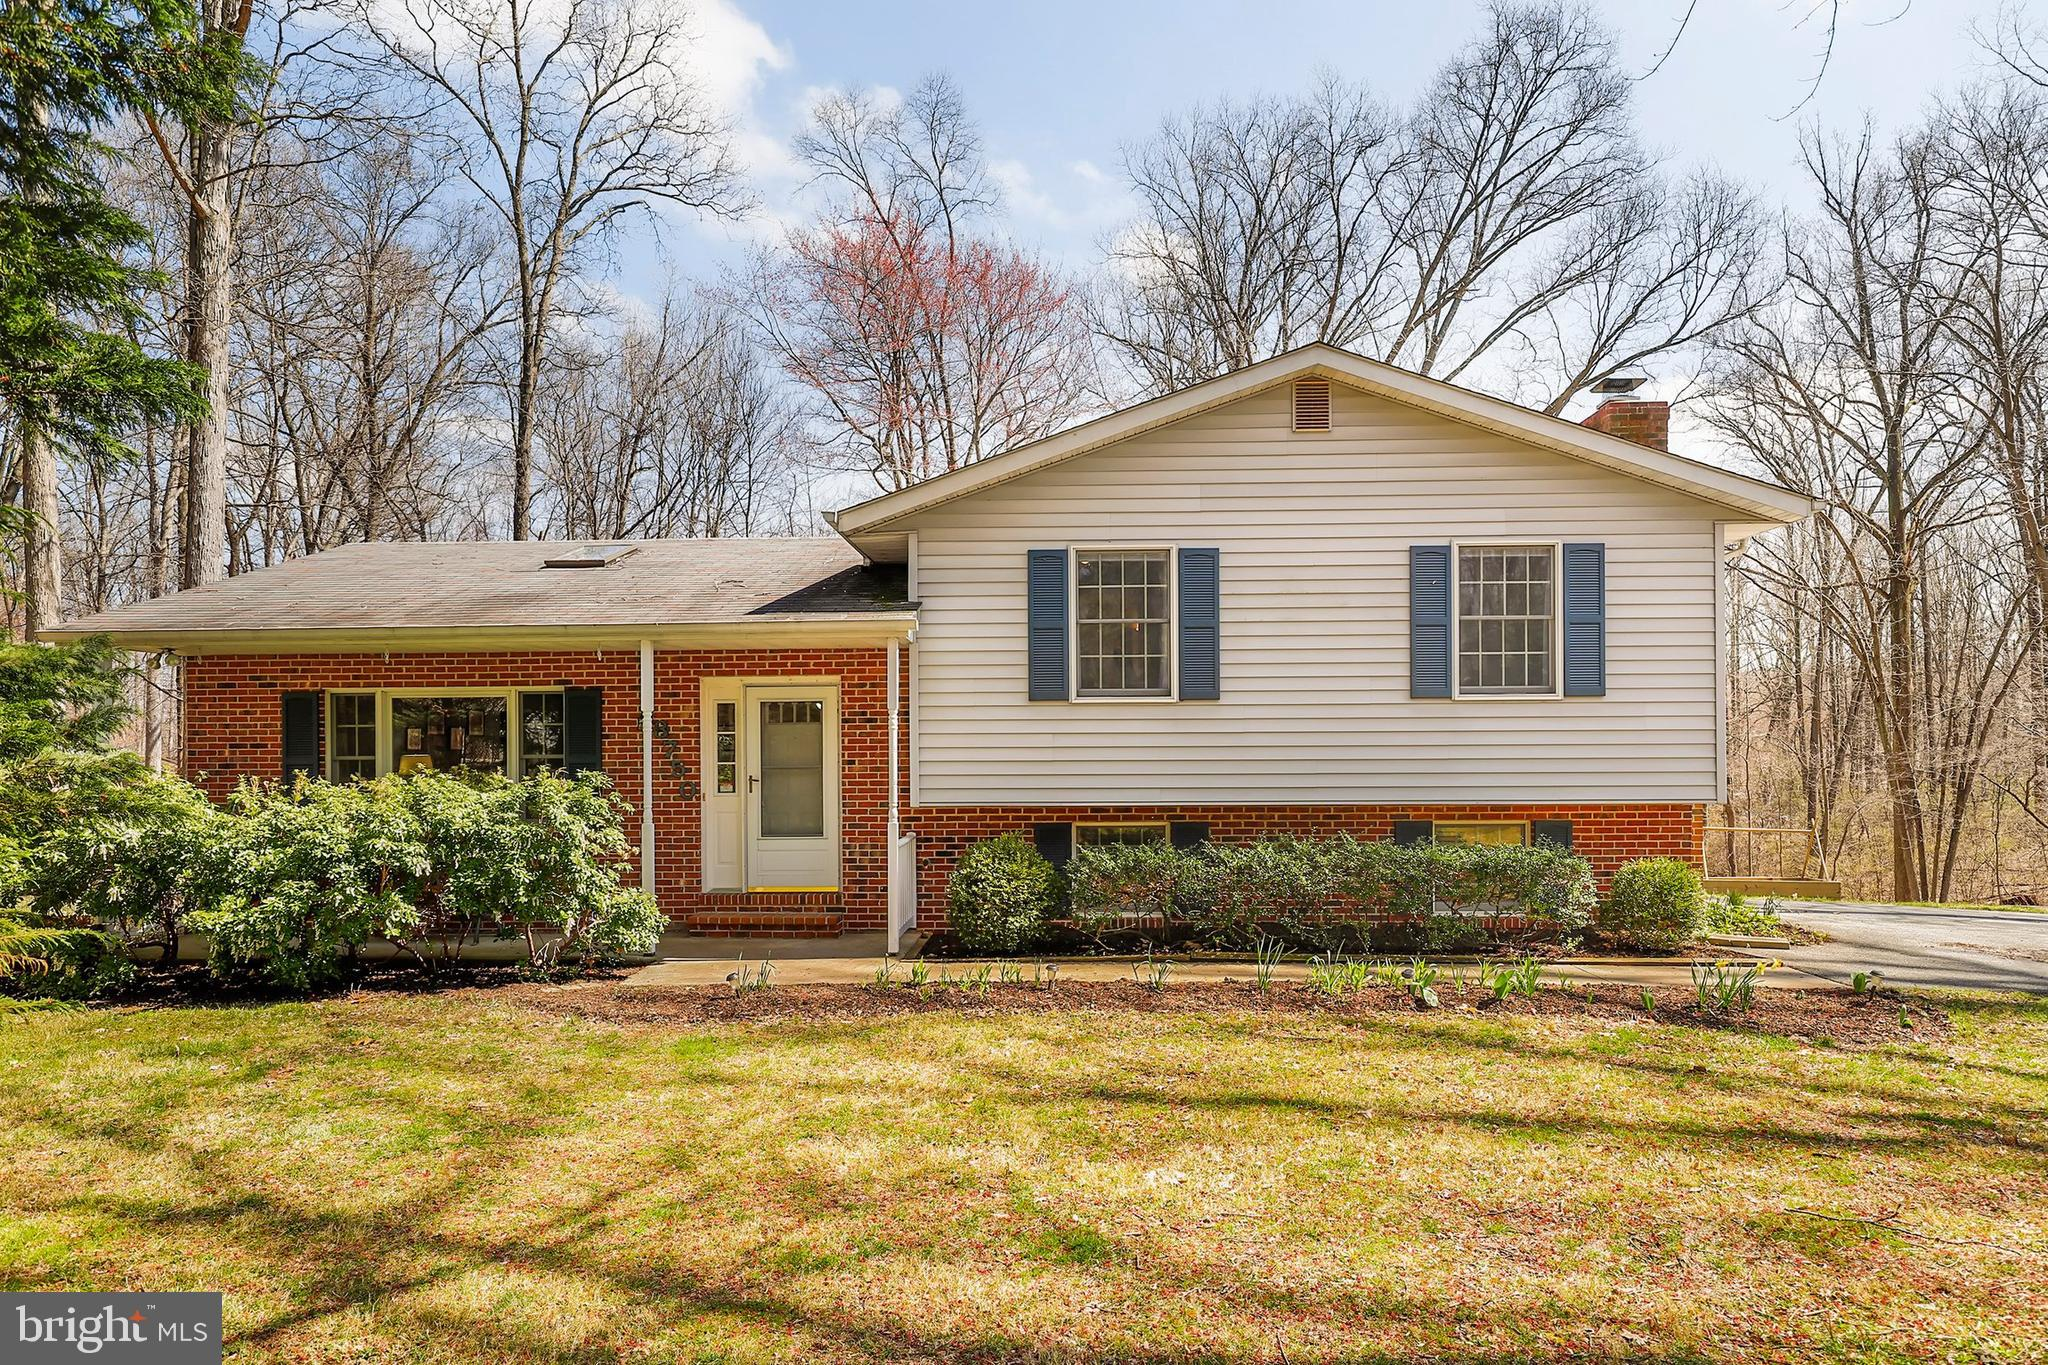 Well-cared-for house with even better property. Sits on over 2 acres surrounded by trees with a smal